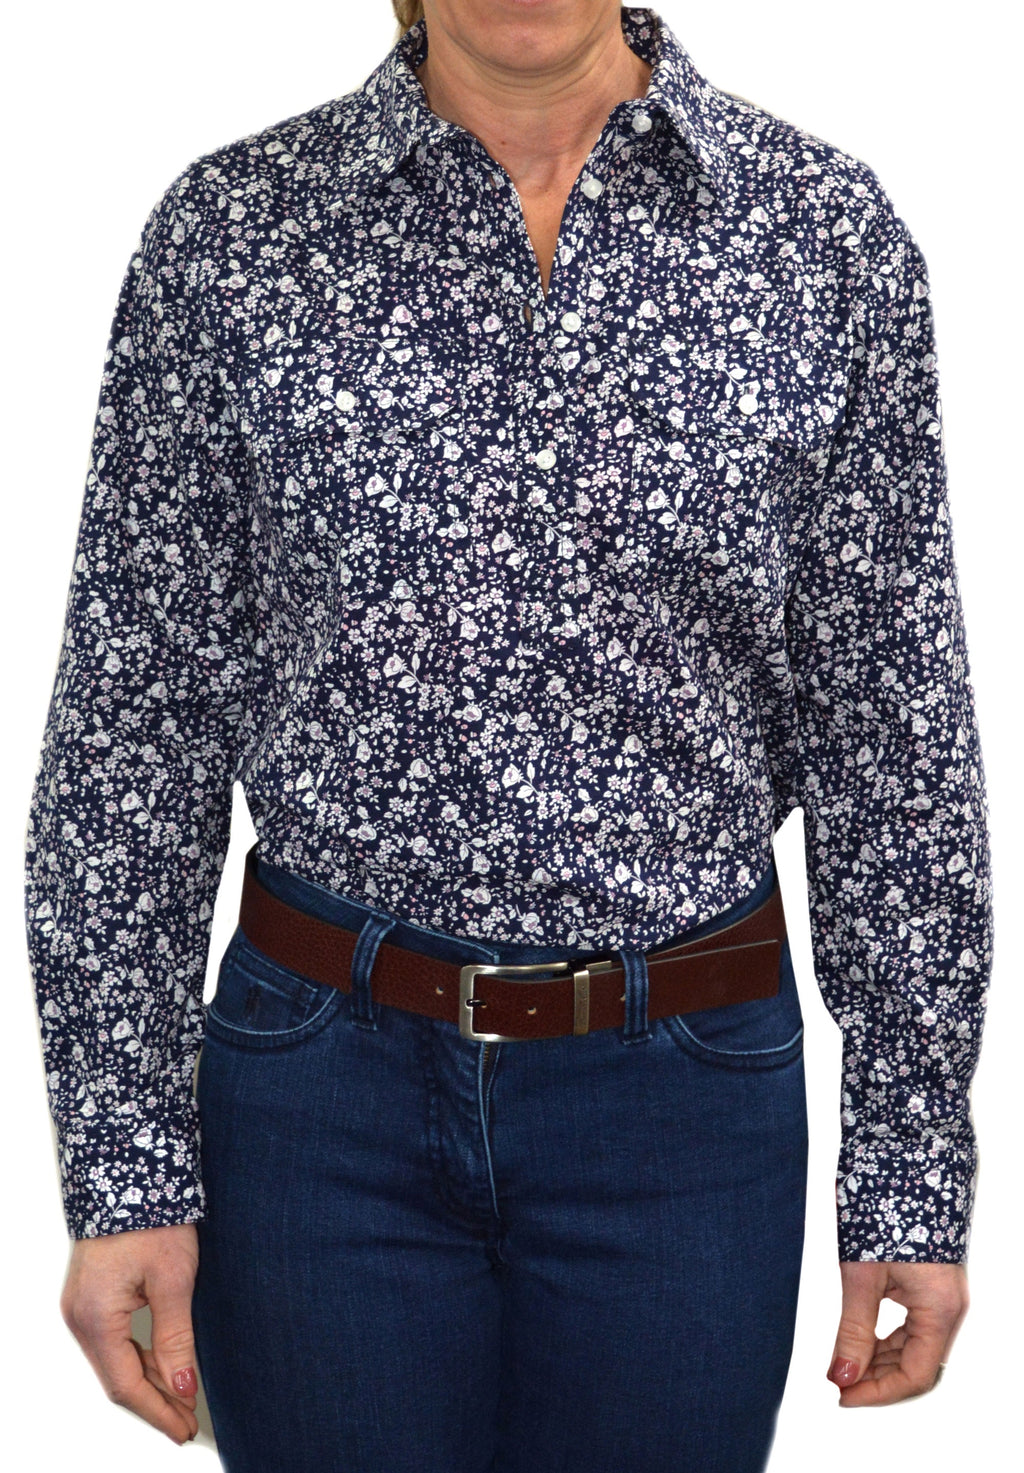 Womens Half Placket Navy/Pink2 pckt Print L/S shirt